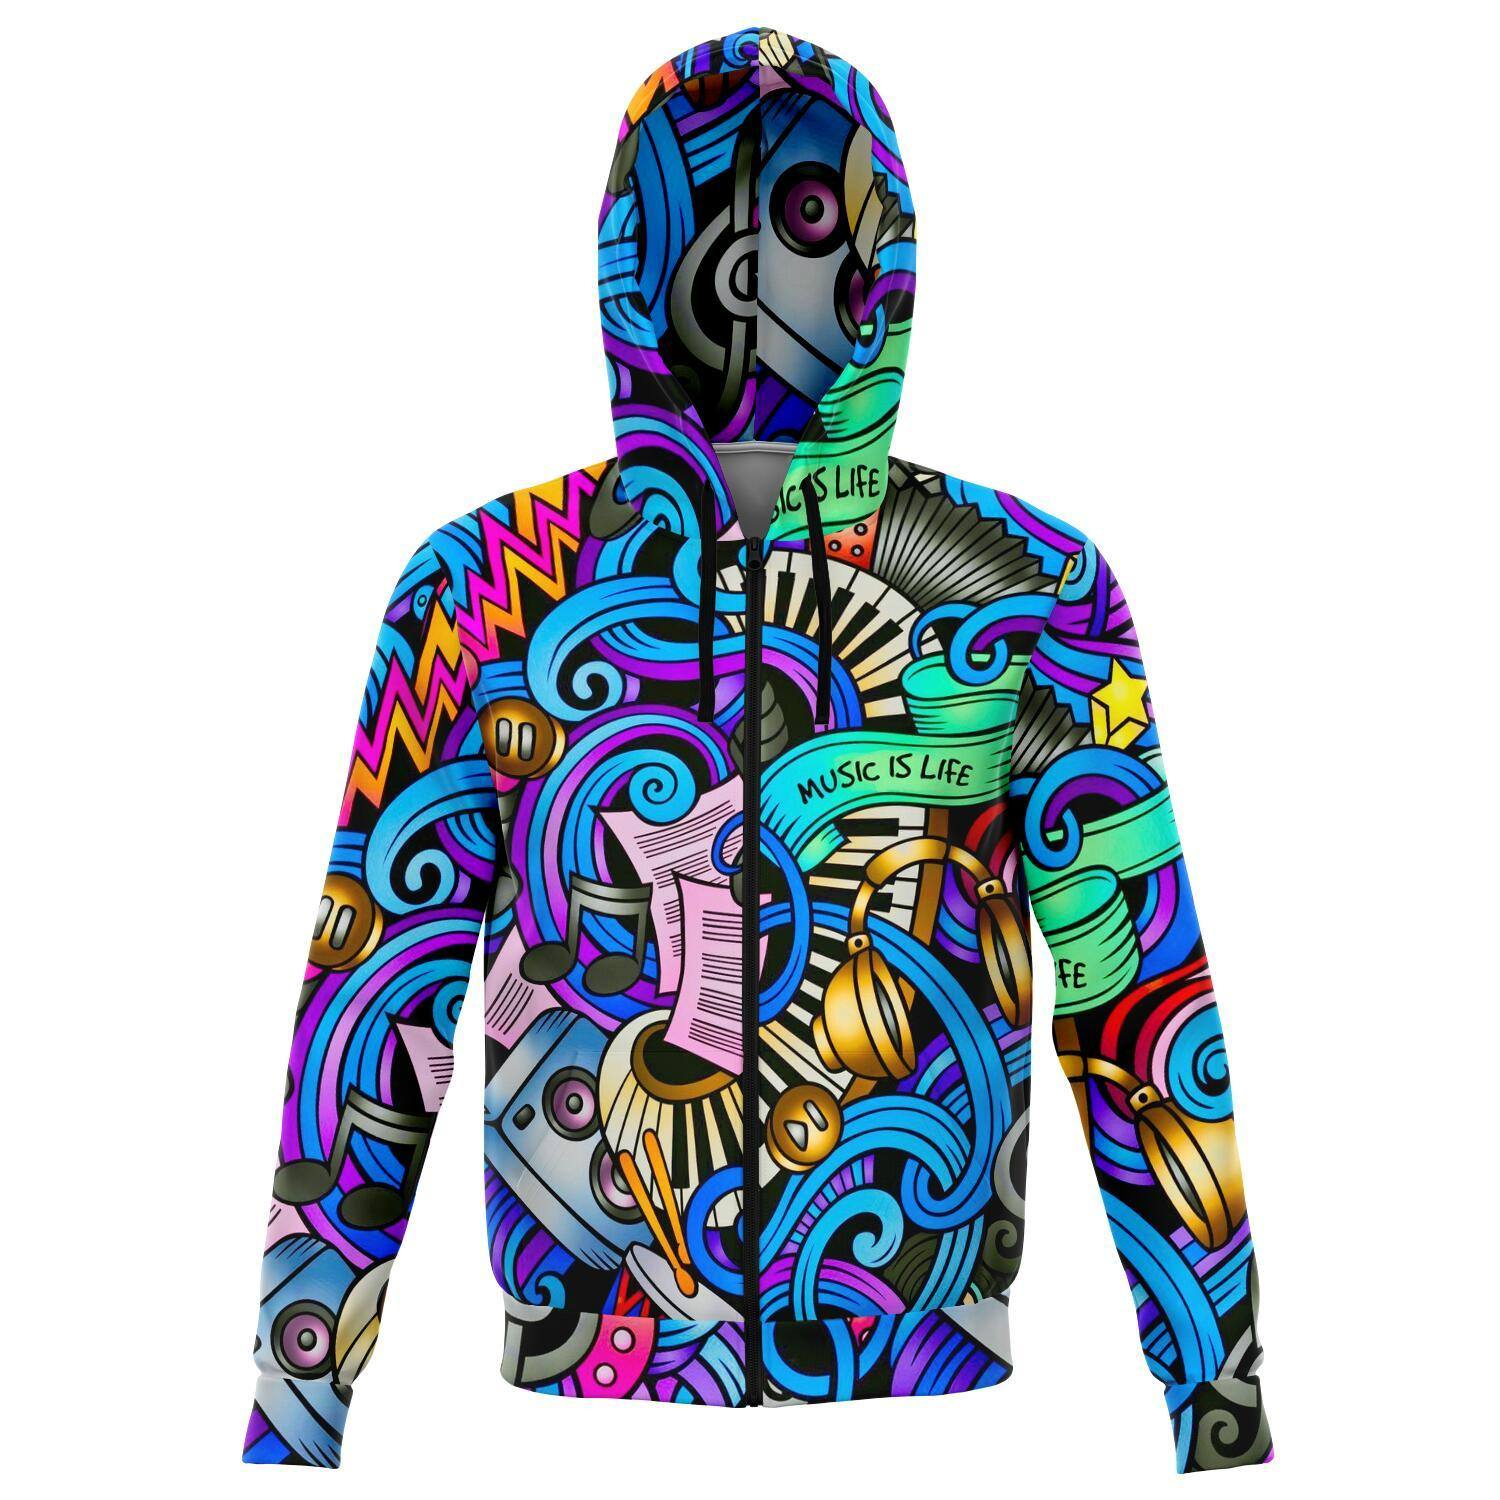 MUSIC IS LIFE PREMIUM ZIP UP HOODIE